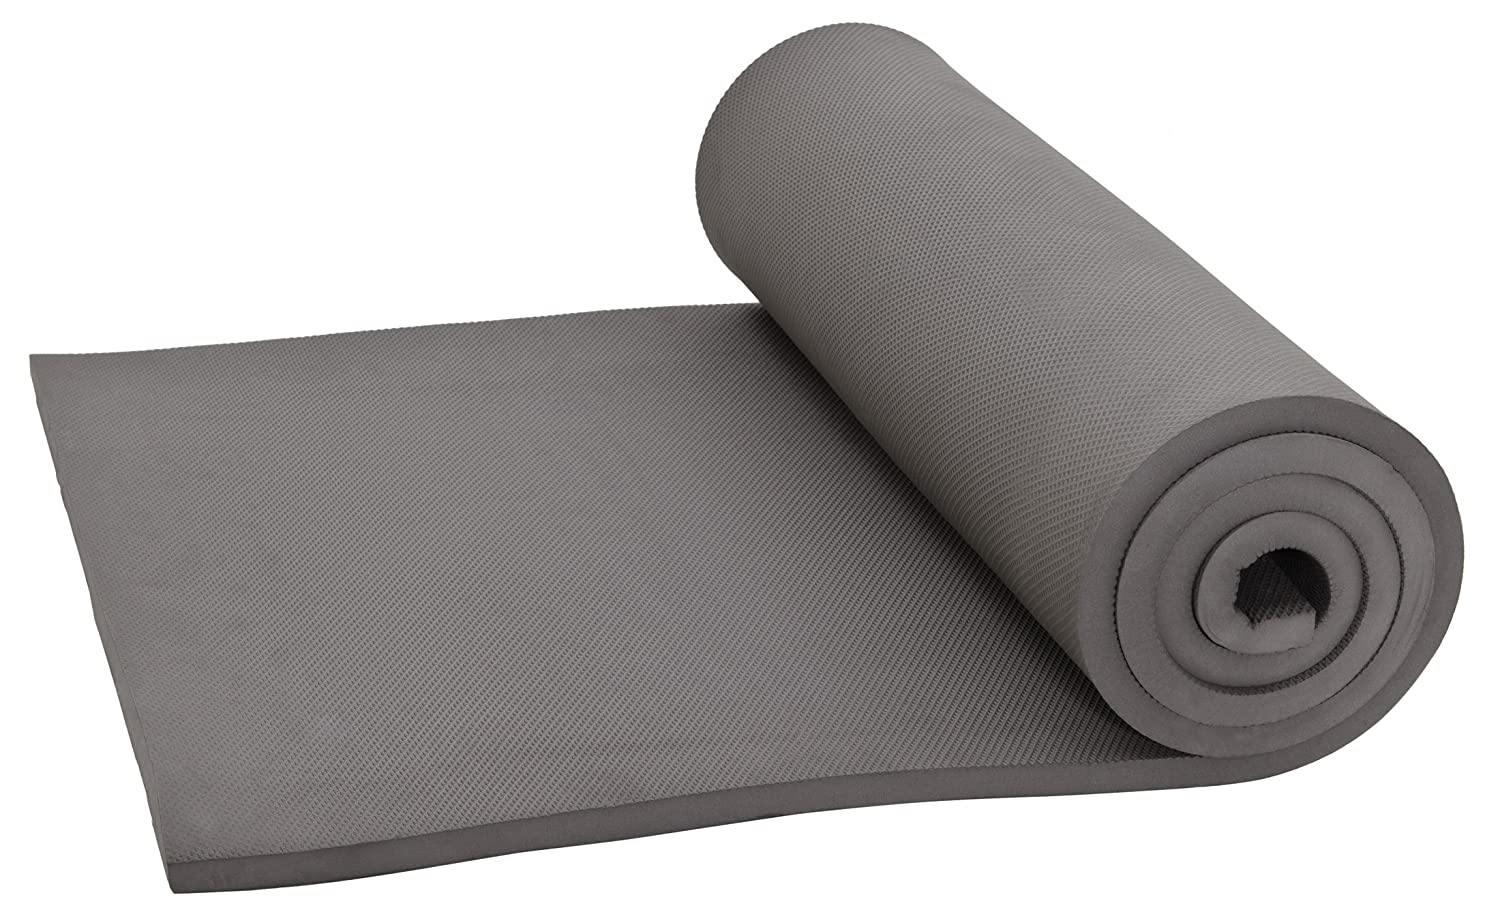 Floor mats to sleep on - Amazon Com Alps Mountaineering Foam Camping Mat Camping Air Mattresses Sports Outdoors